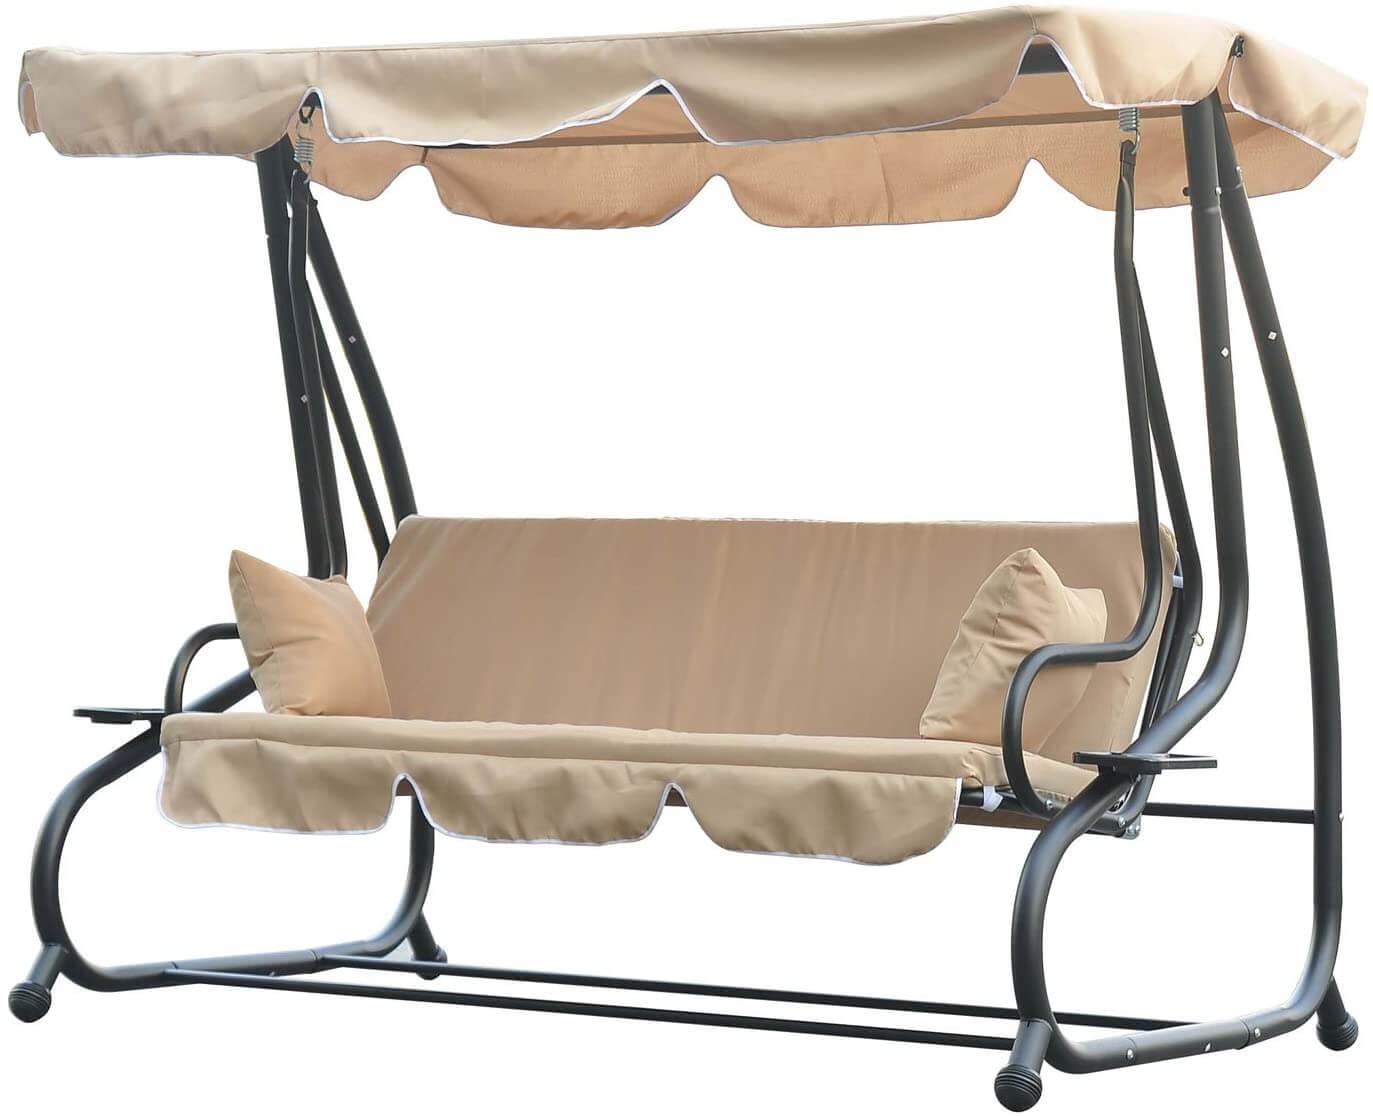 OUTSUNNY 3 SEAT OUTDOOR FREE STANDING COVERED SWING BENCH